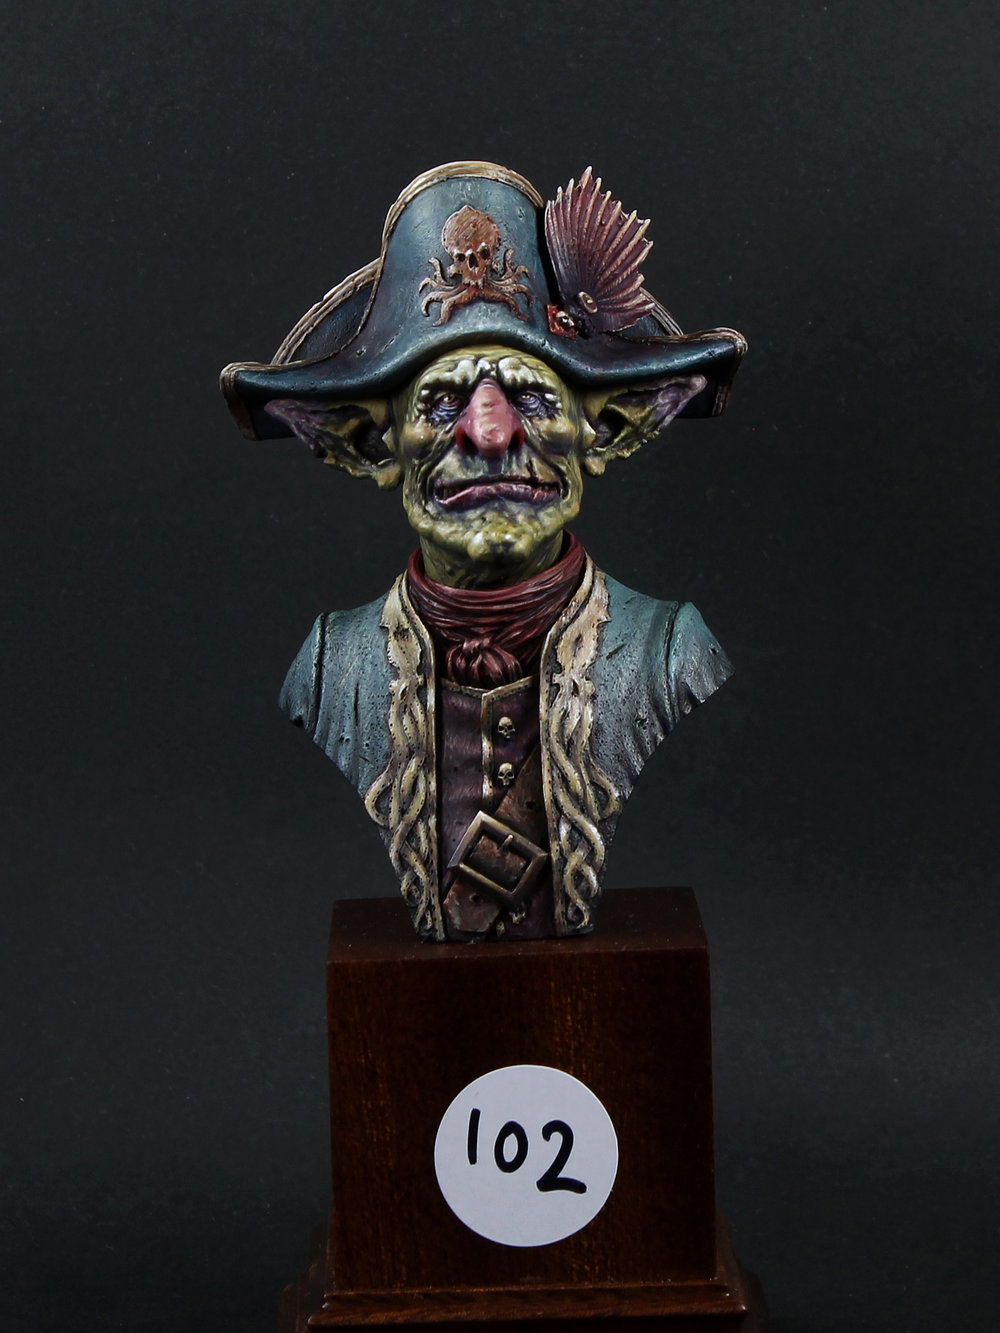 Pirate Goblin